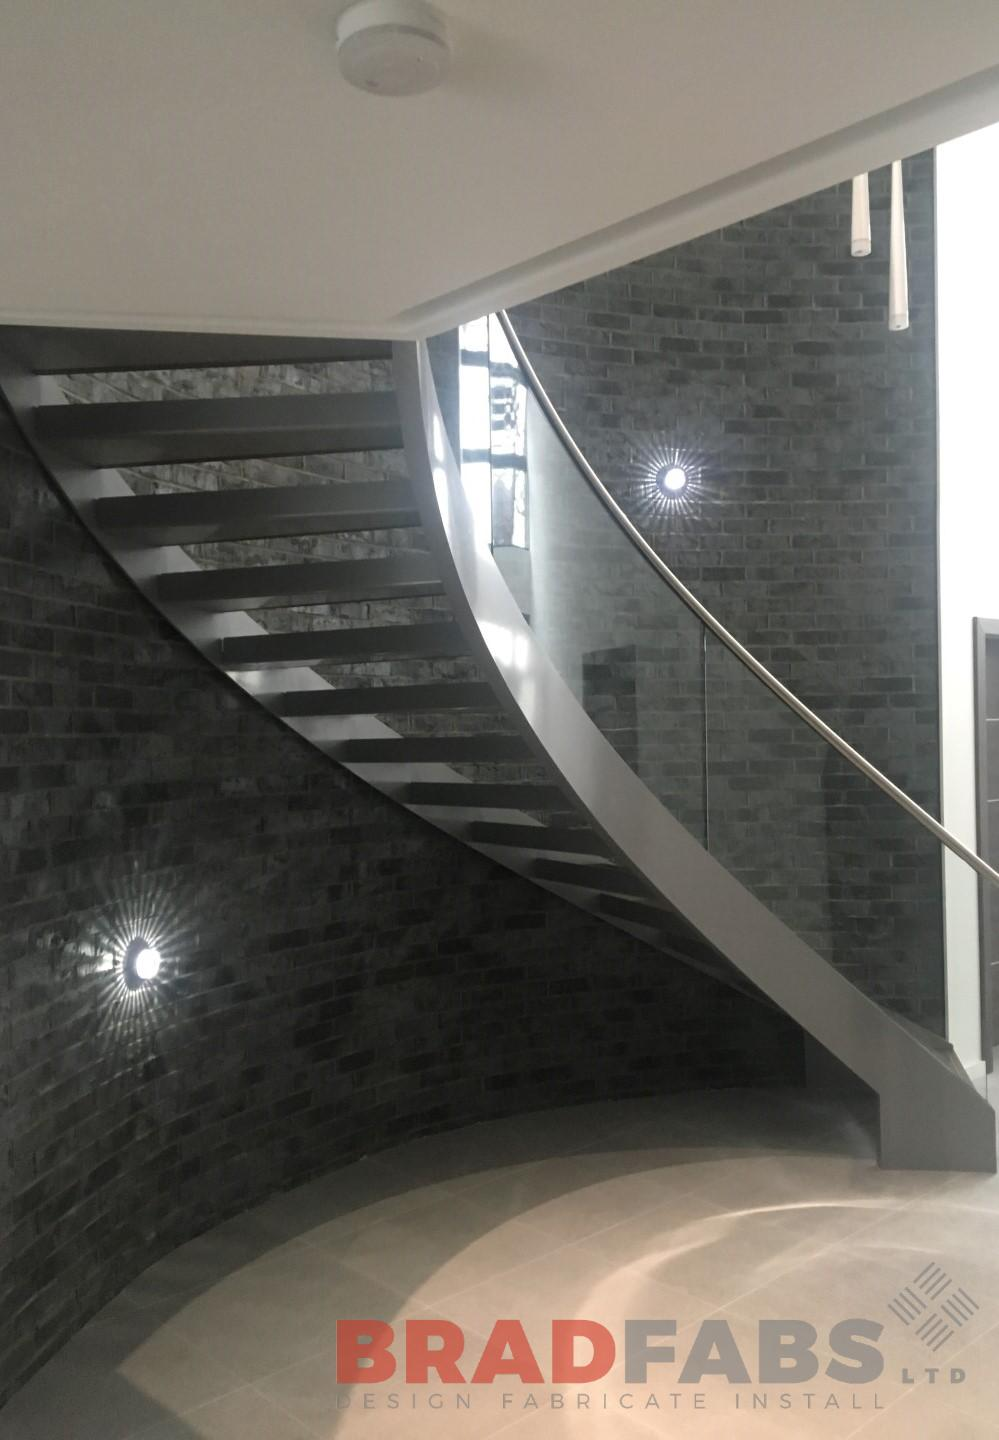 One off curved glass helix staircase designed, manufactured and installed by Bradfabs